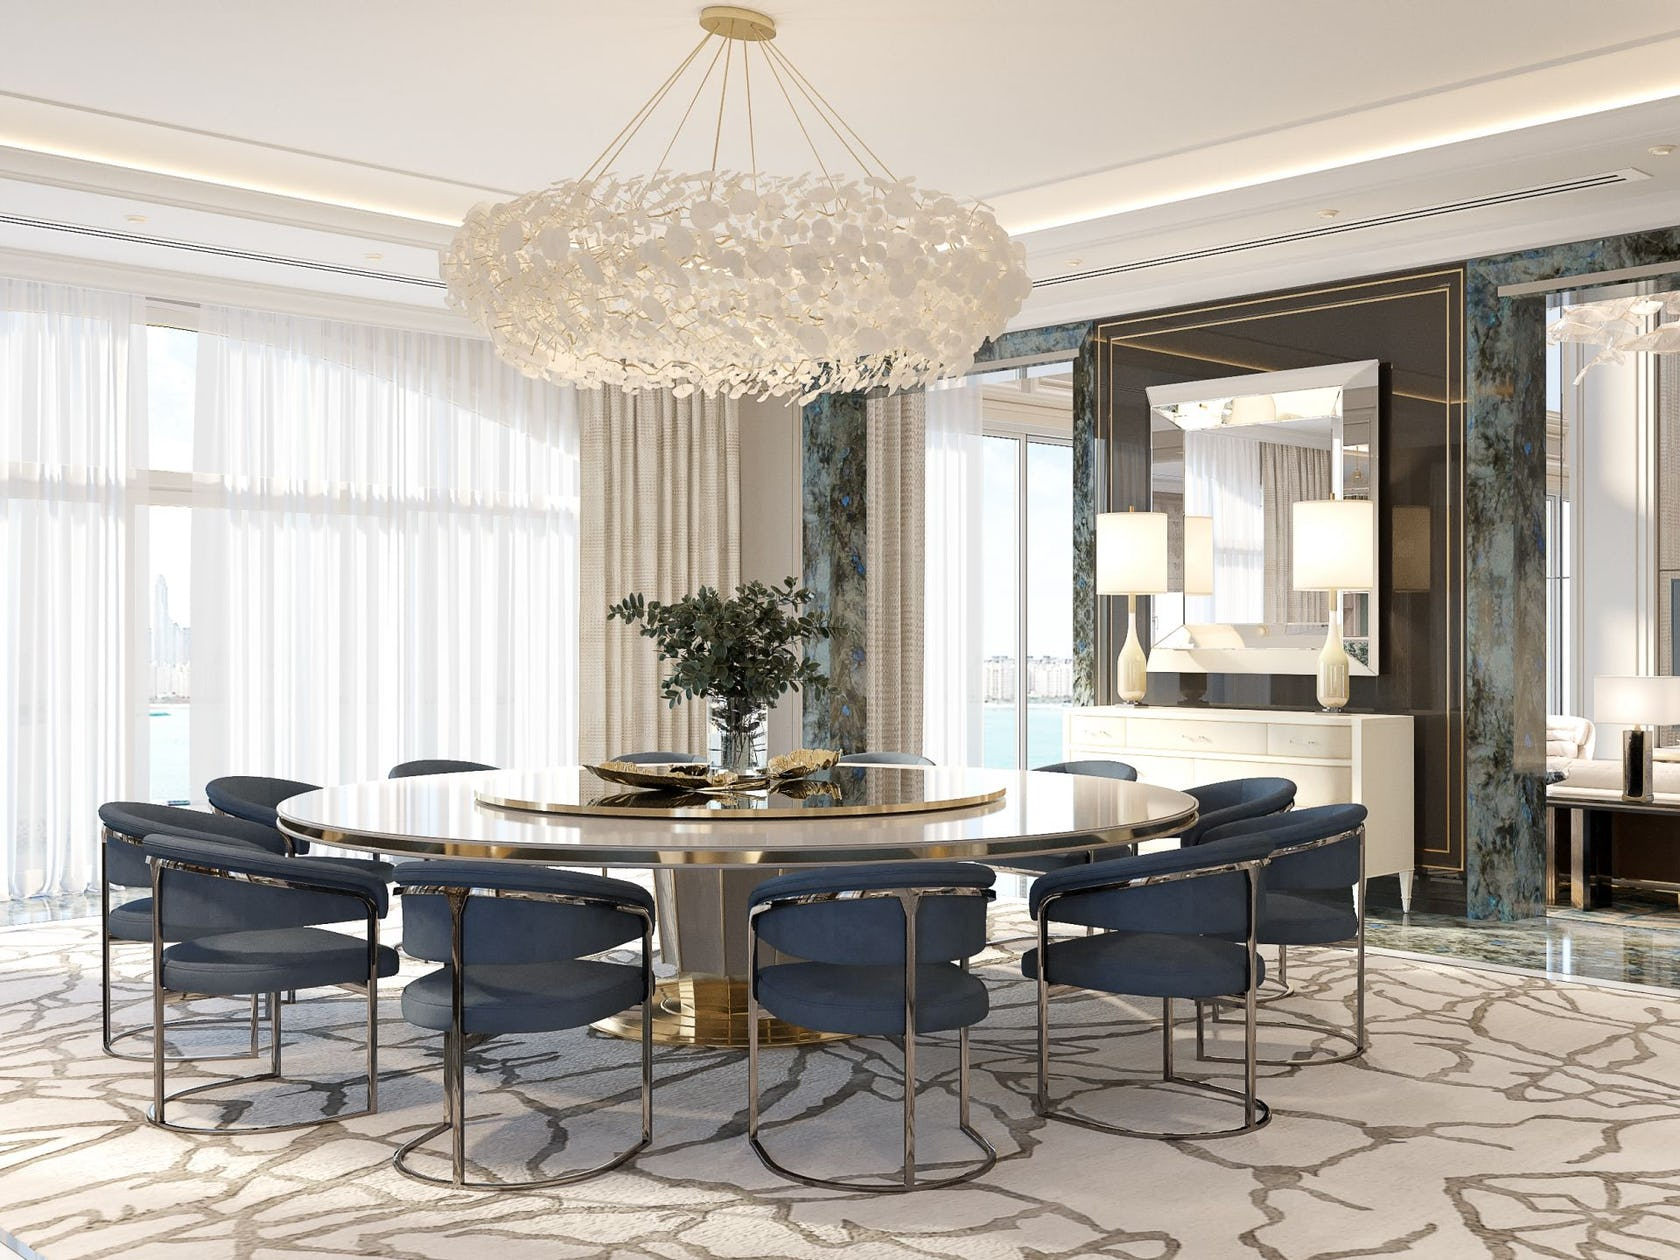 room indoors dining room furniture meeting room conference room interior design chair